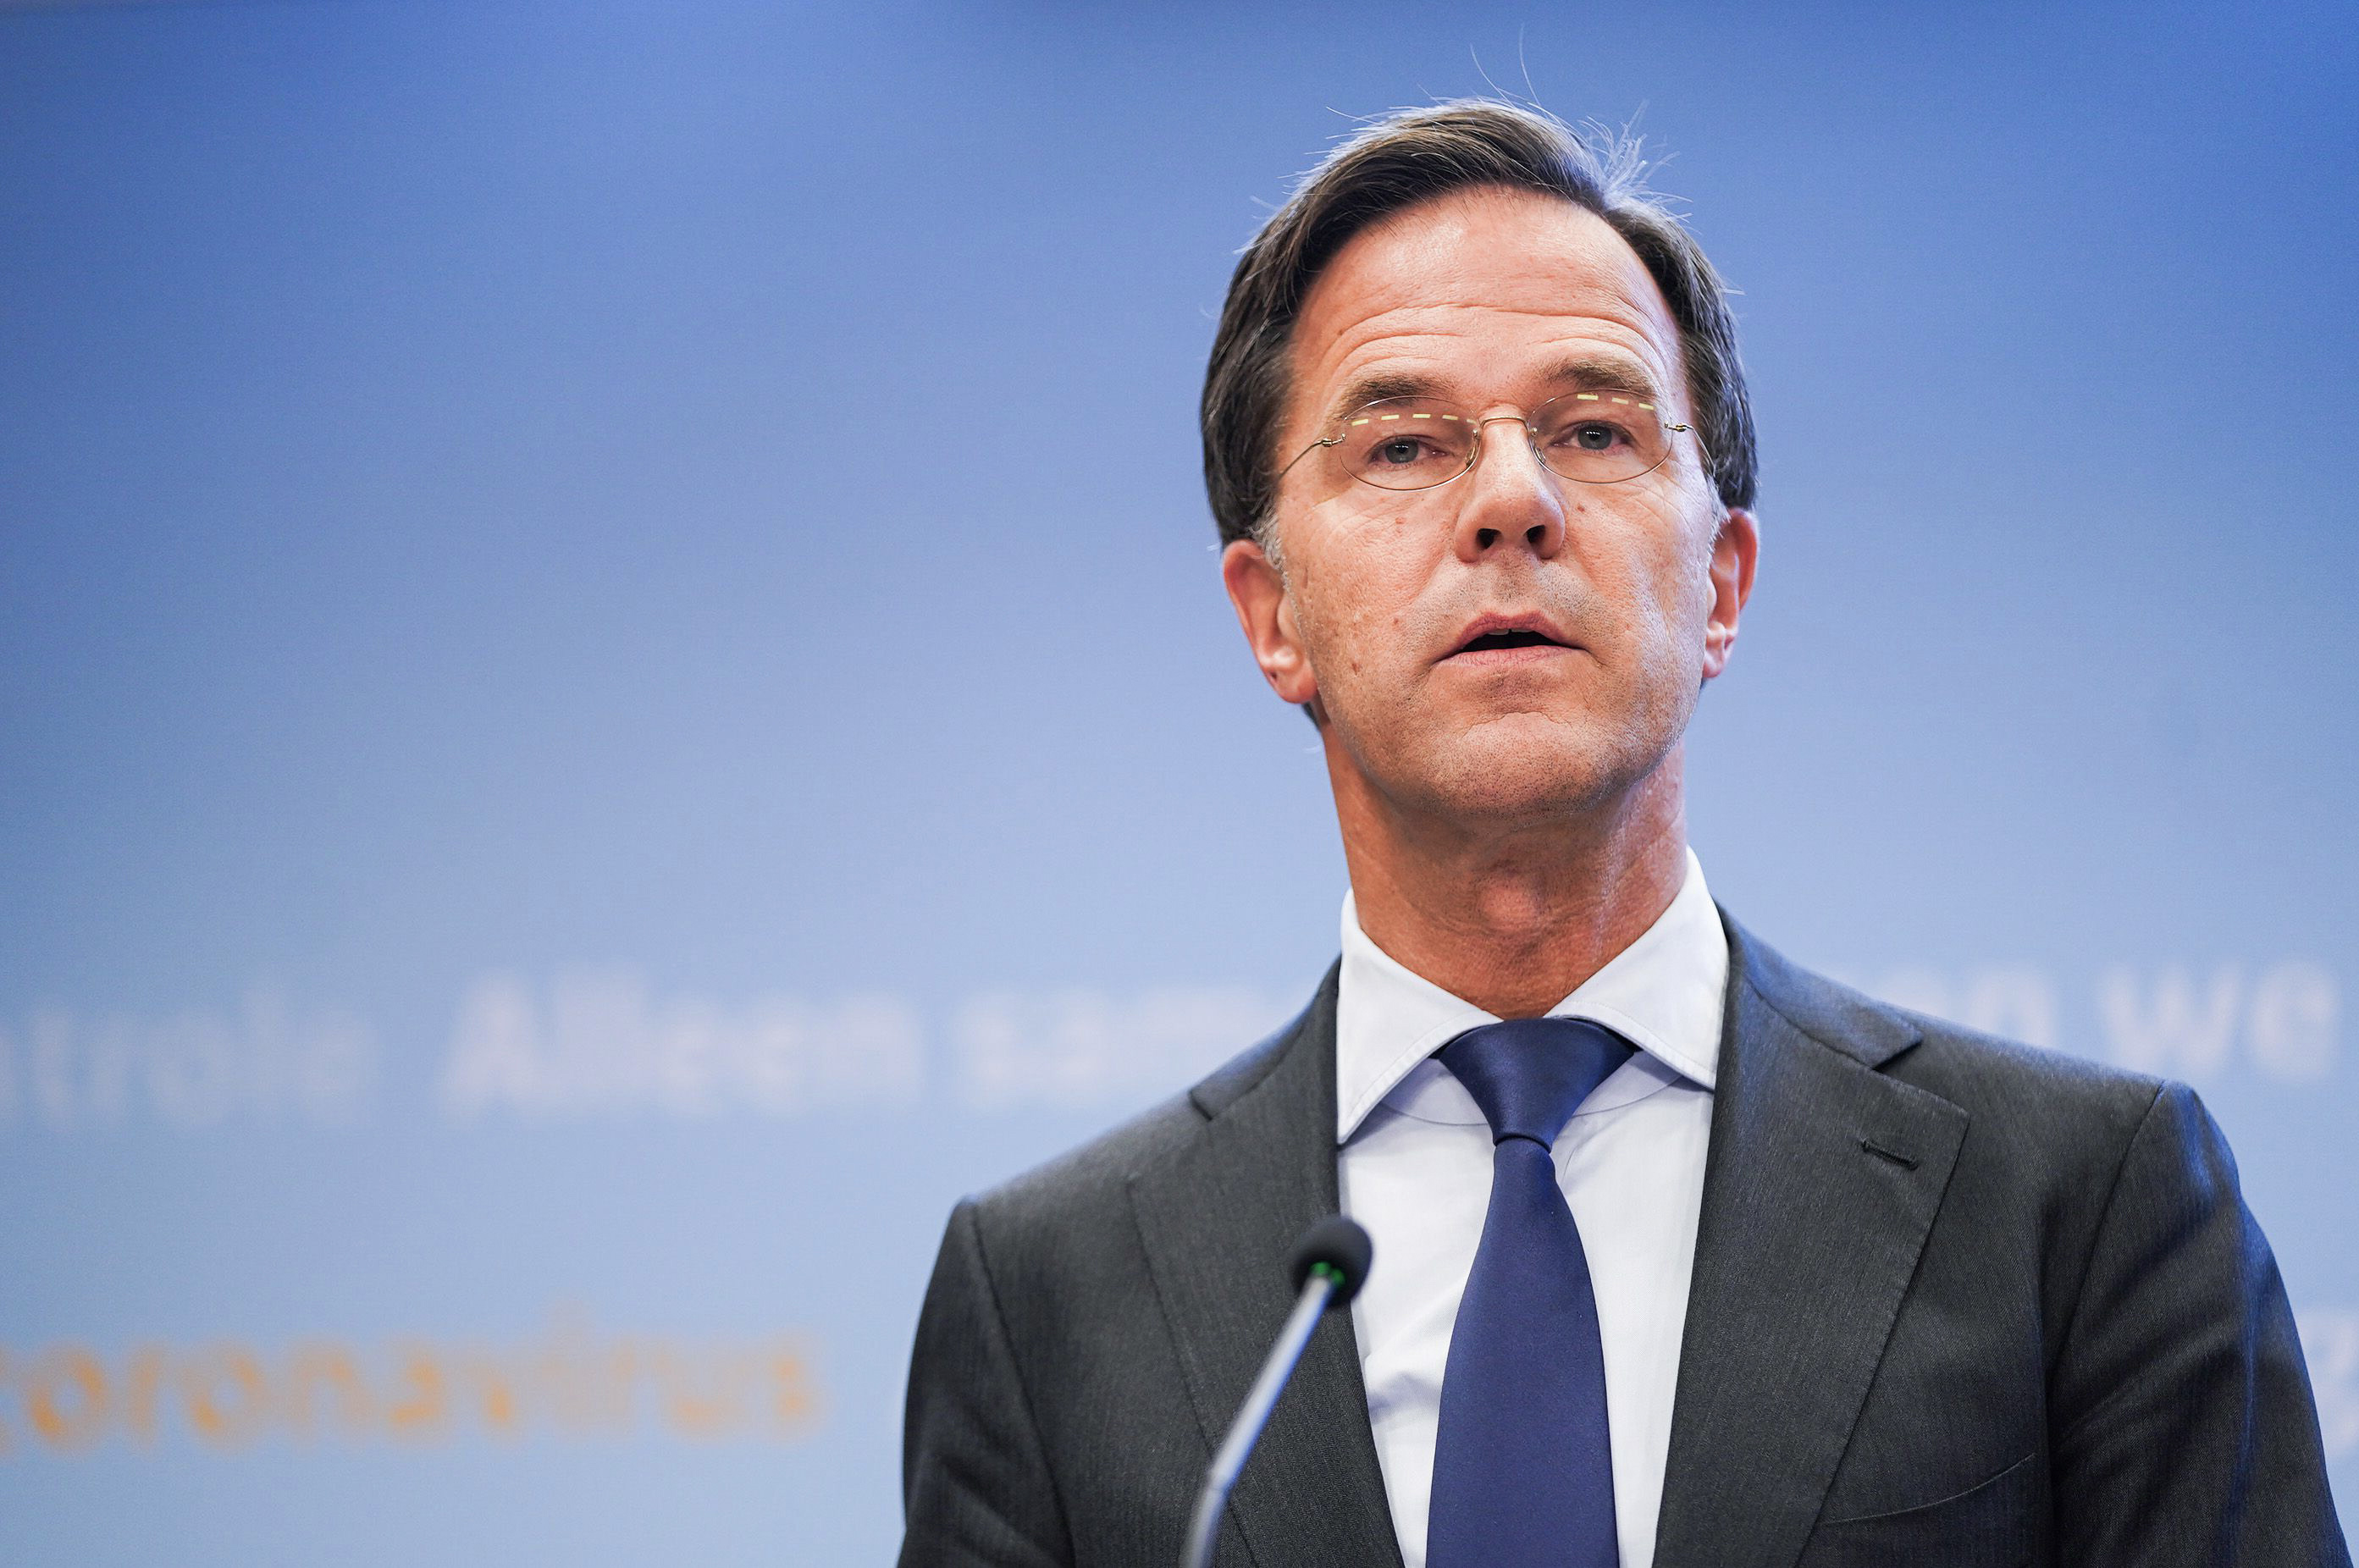 Dutch Prime Minister Mark Rutte speaks during a press conference in The Hague, Netherlands, on October 13.